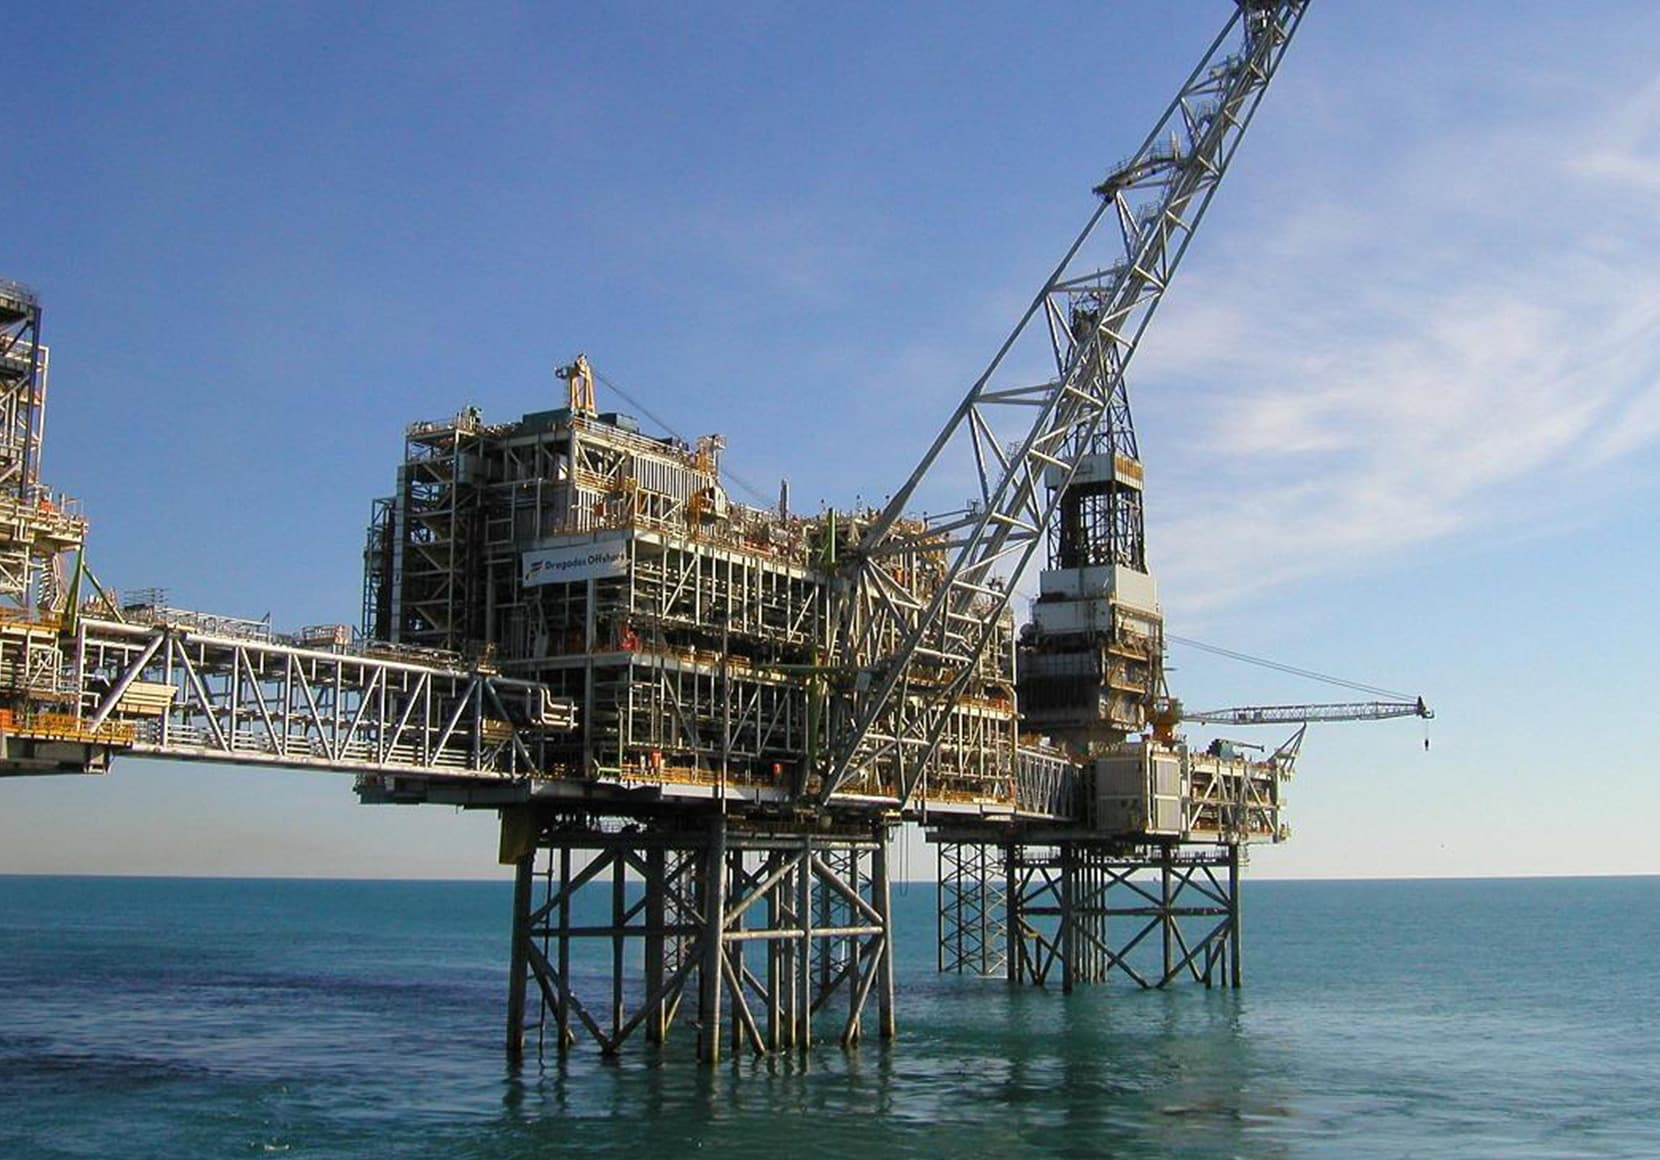 The Buzzard platform, a key joint venture for Suncor Energy UK Limited